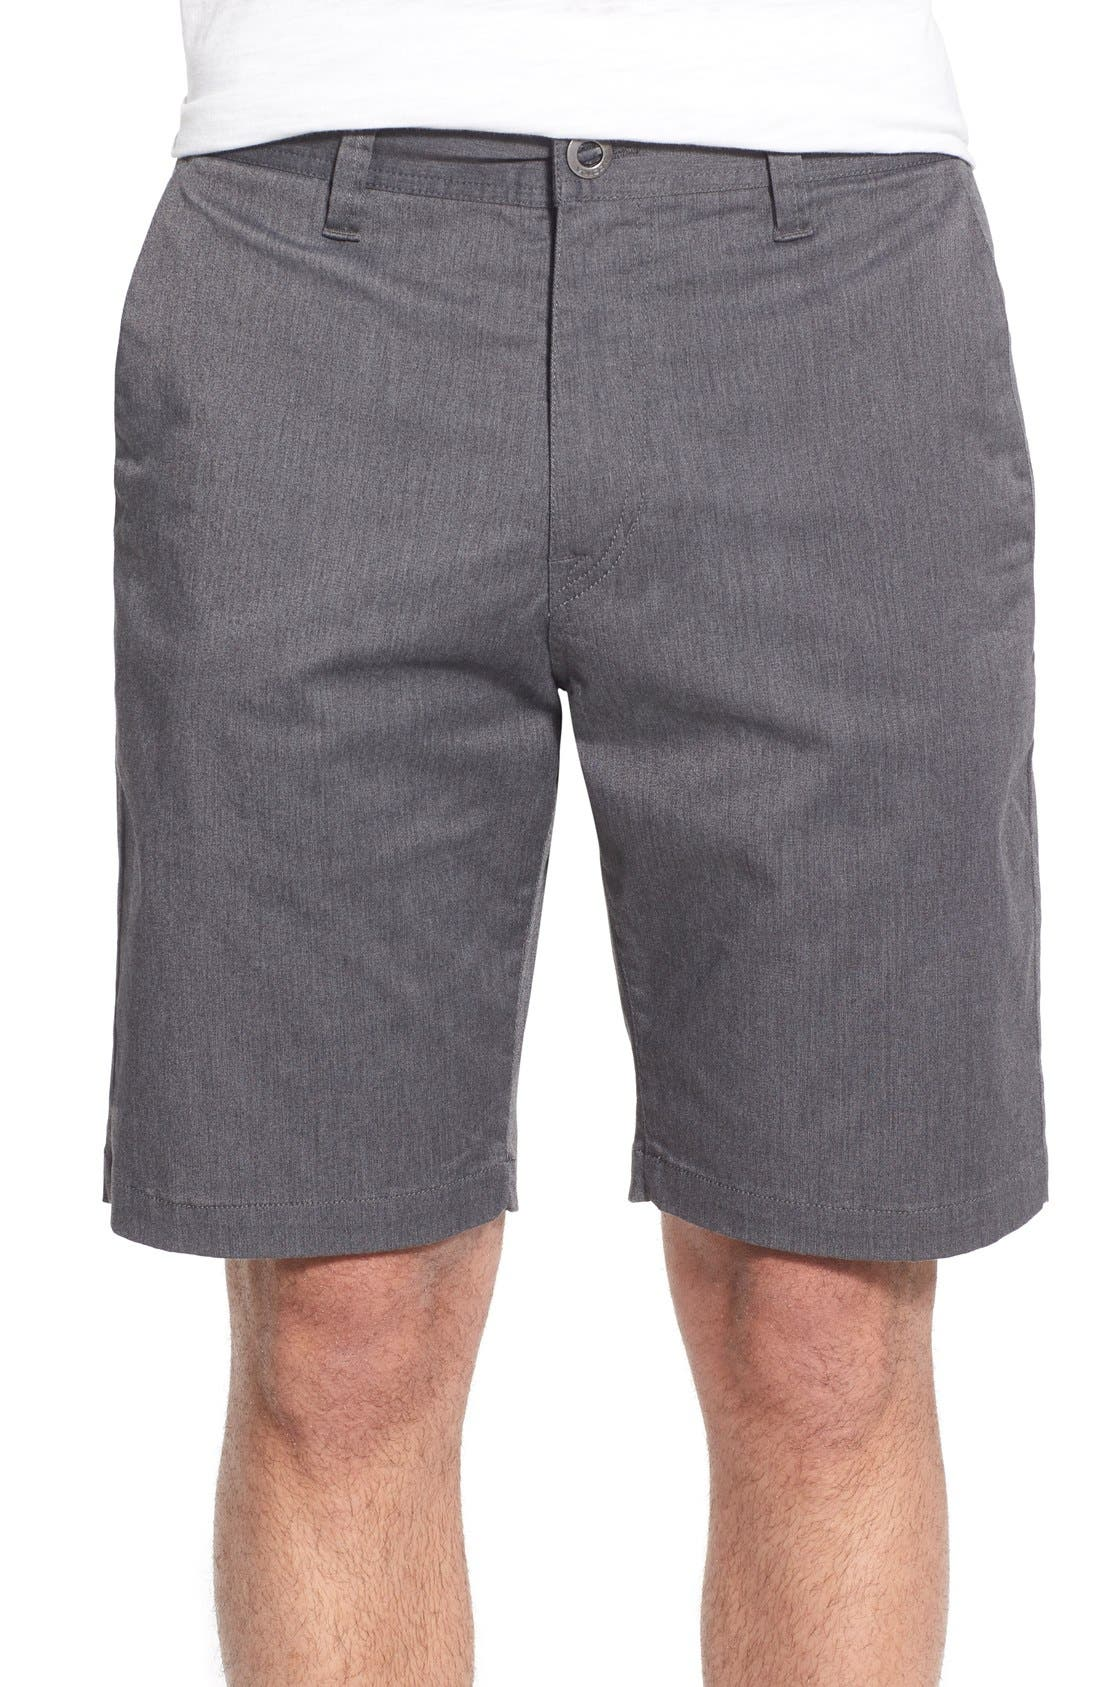 Alternate Image 1 Selected - Volcom 'Lightweight' Shorts